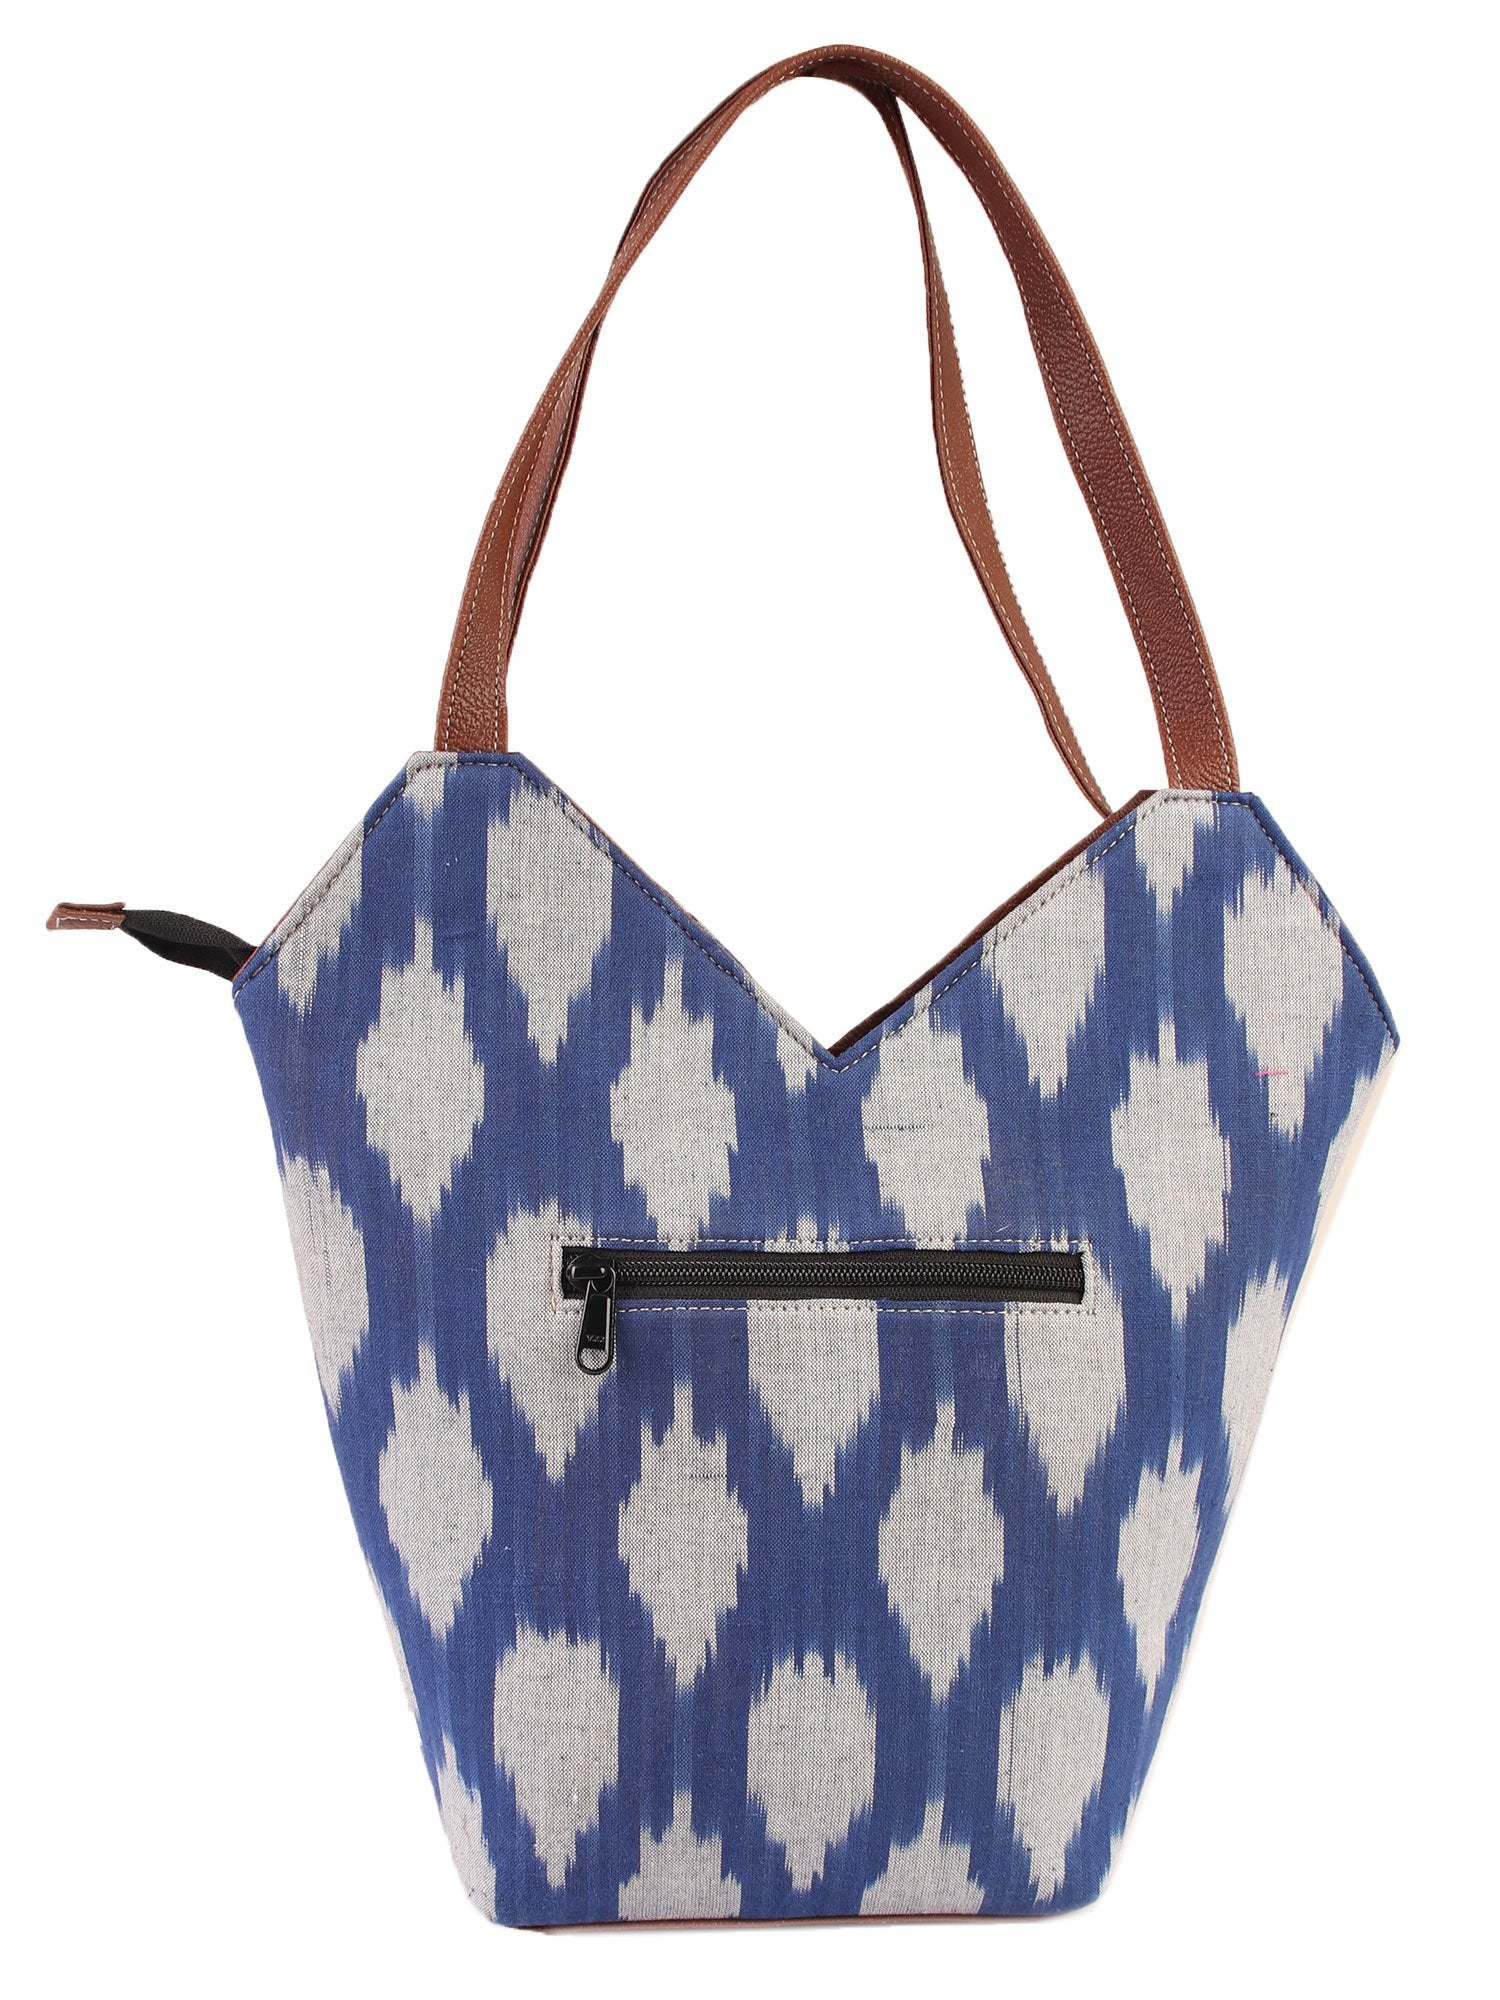 Blue Ikkat Tote Bag